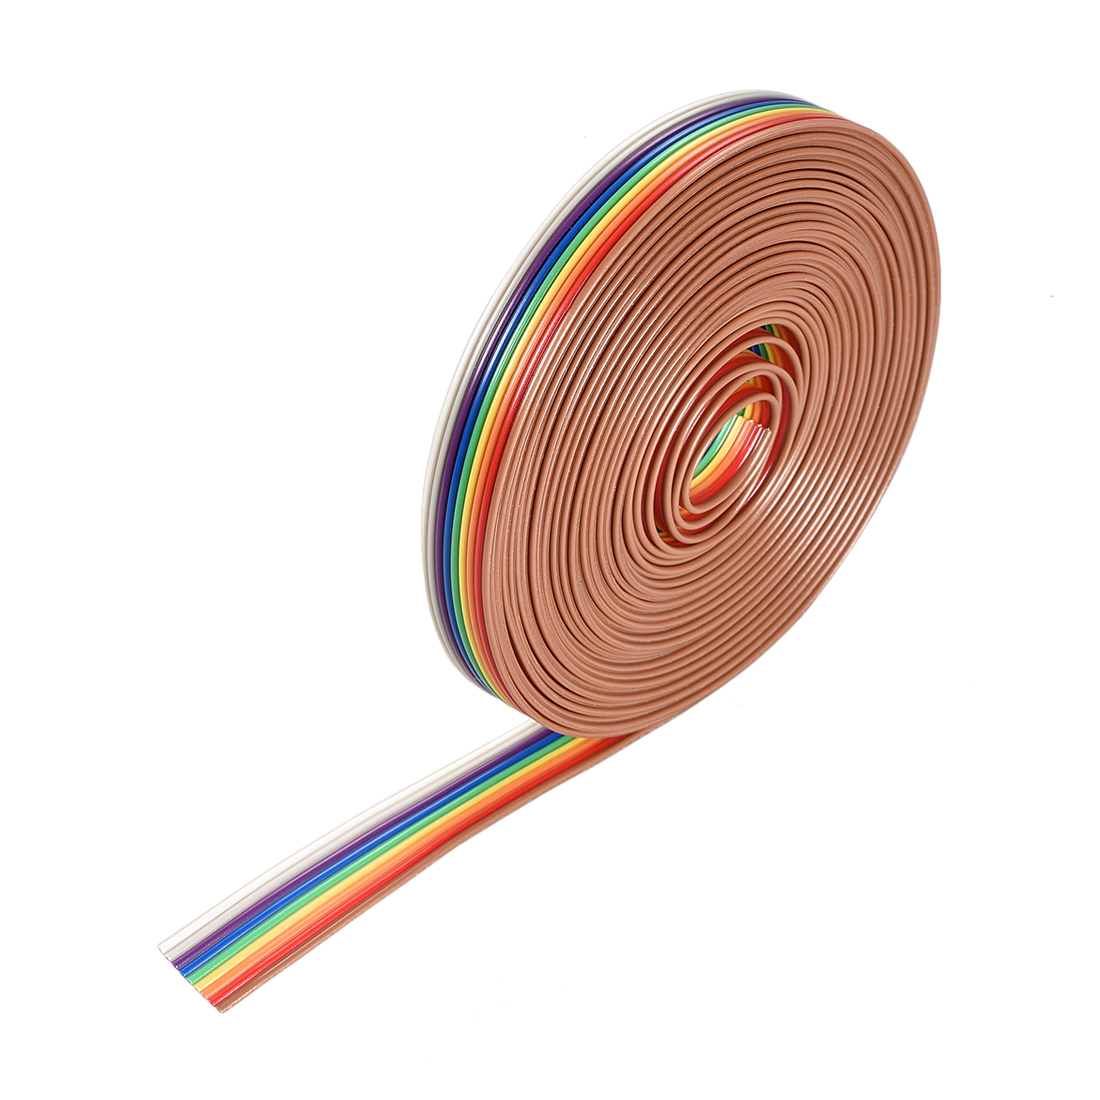 IDC Rainbow Wire Flat Ribbon Cable 9P 1.27mm Pitch 5meter/16.4ft Length